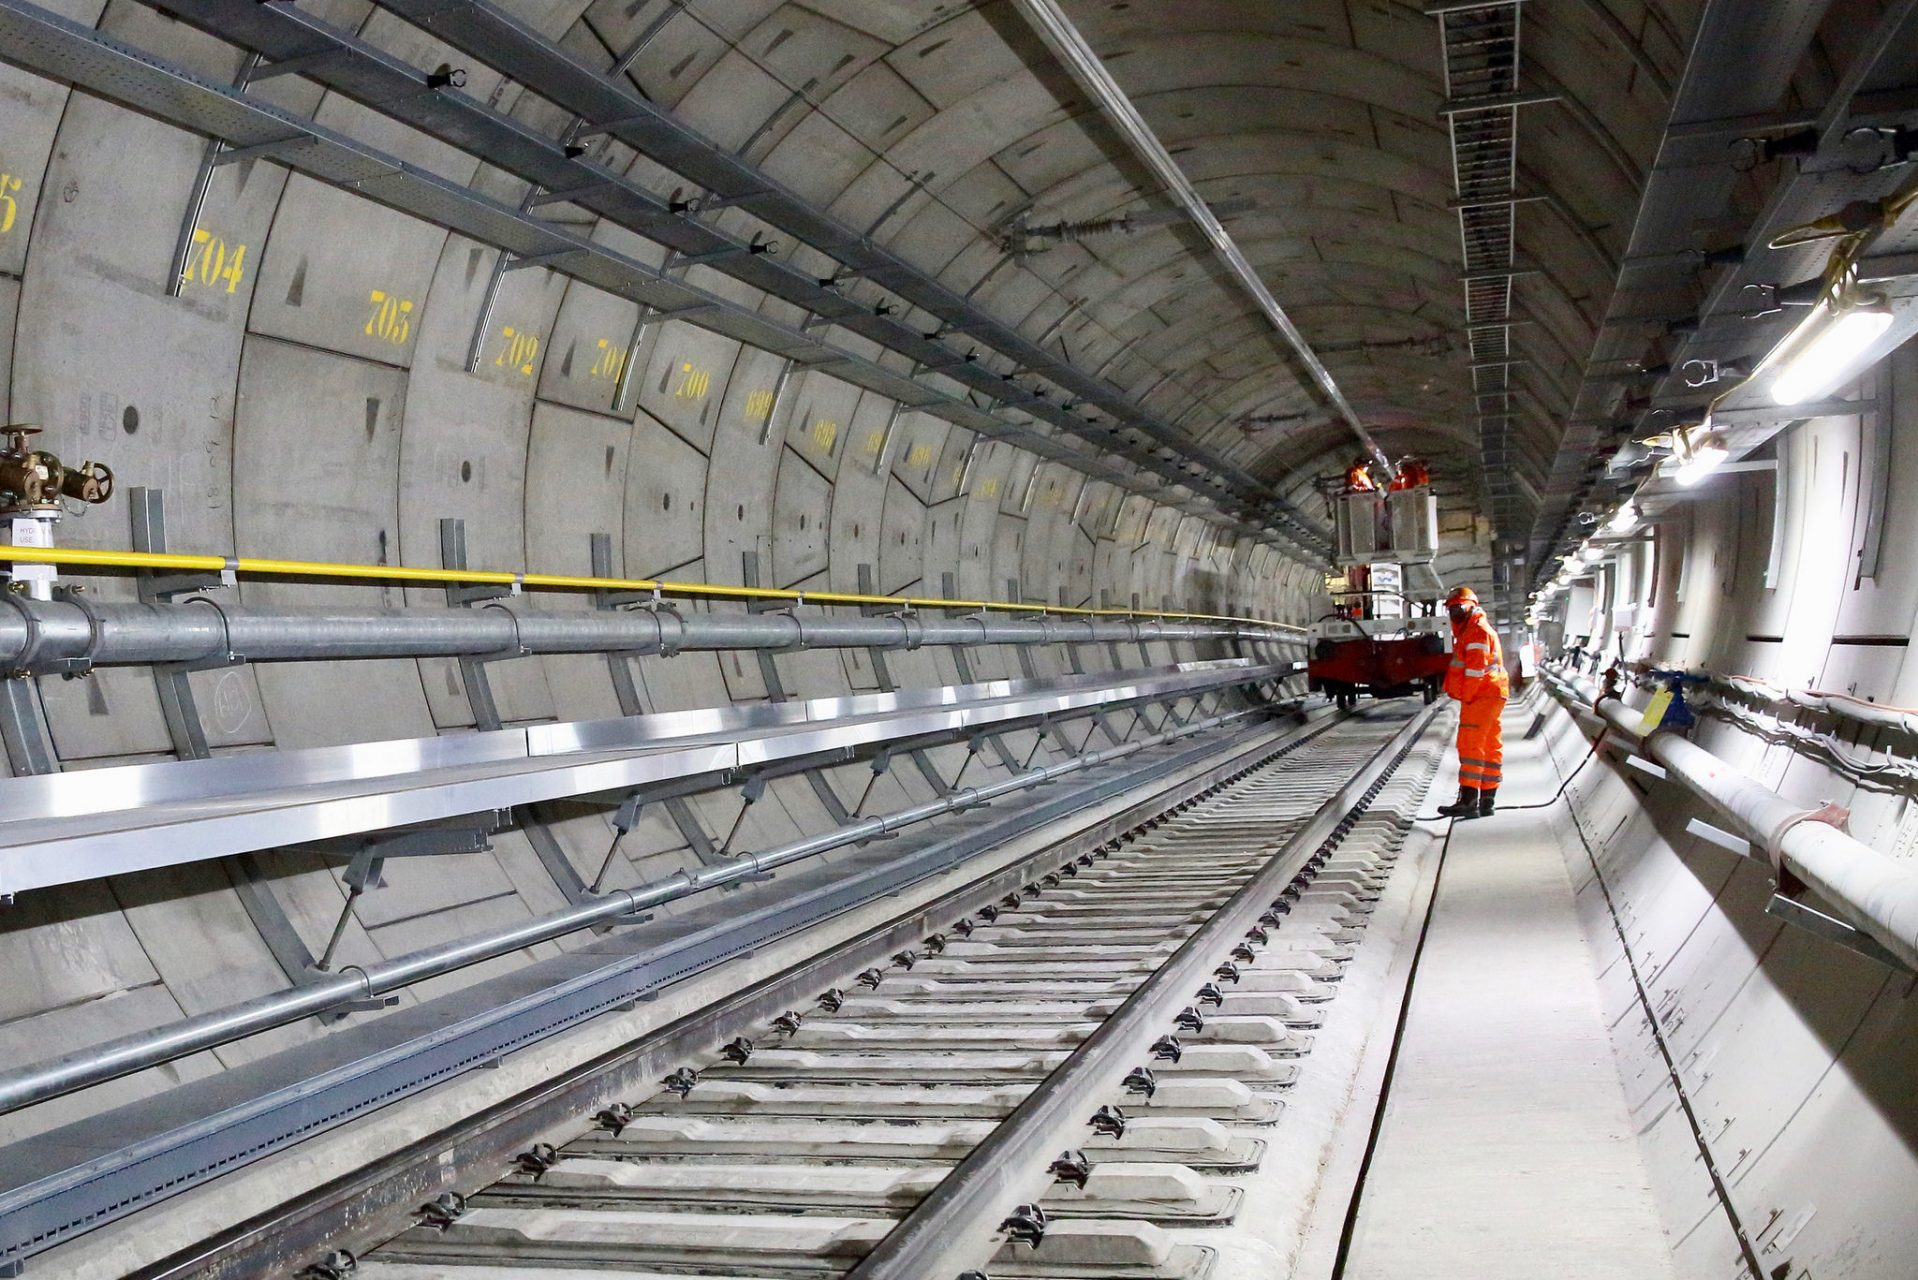 Crossrail image - copyright Transport for London